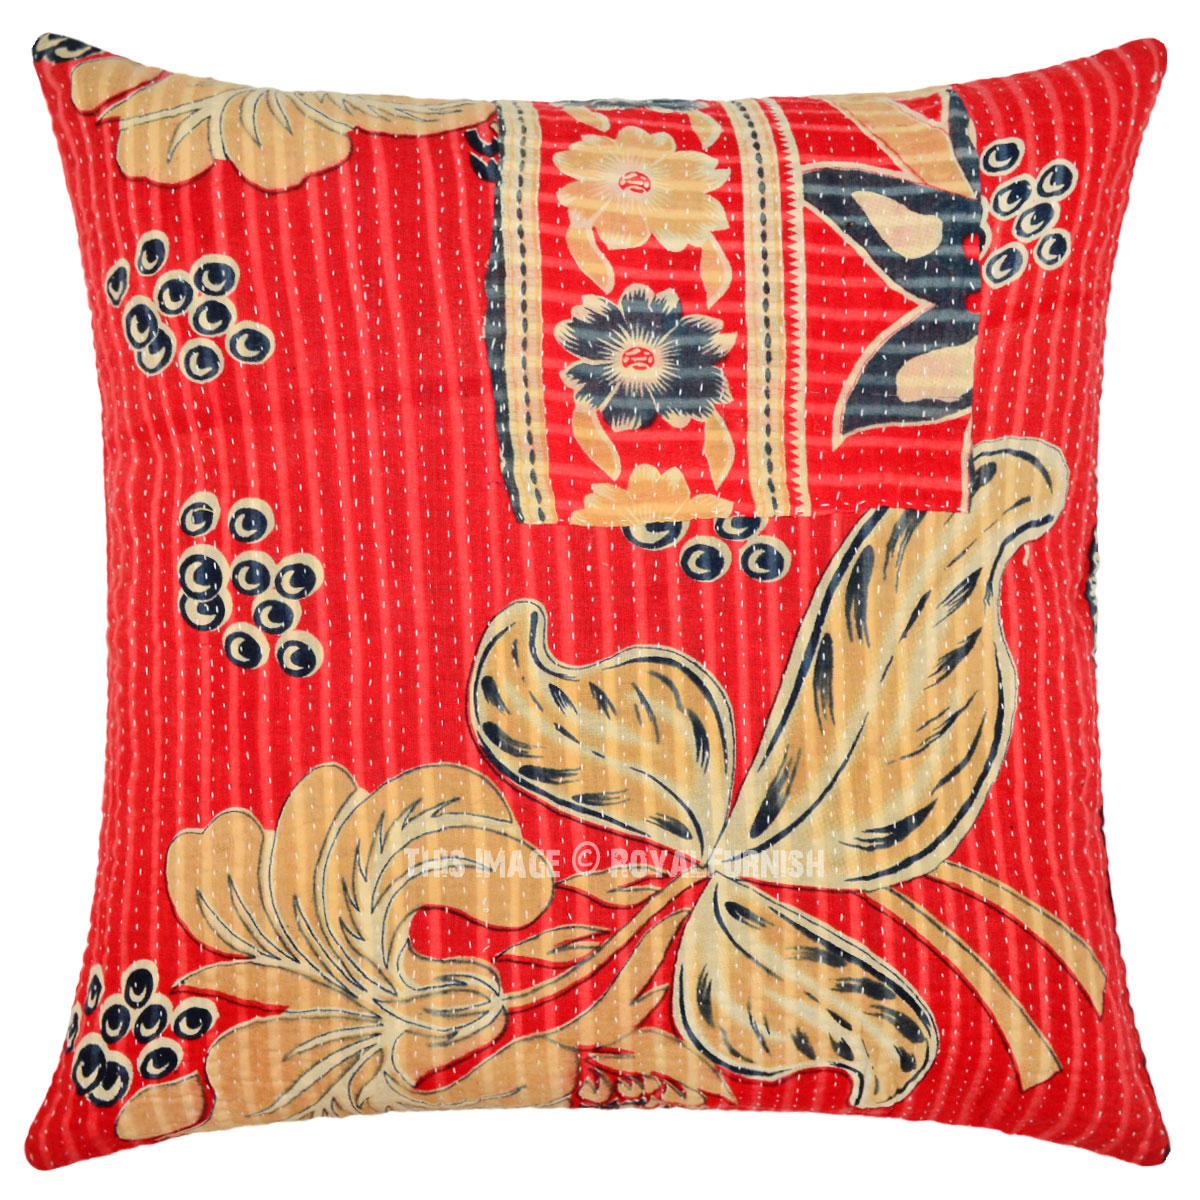 Decorative Pillows Vintage : 18X18 Red Multi Decorative Old Vintage Kantha Throw Pillow Cover - RoyalFurnish.com